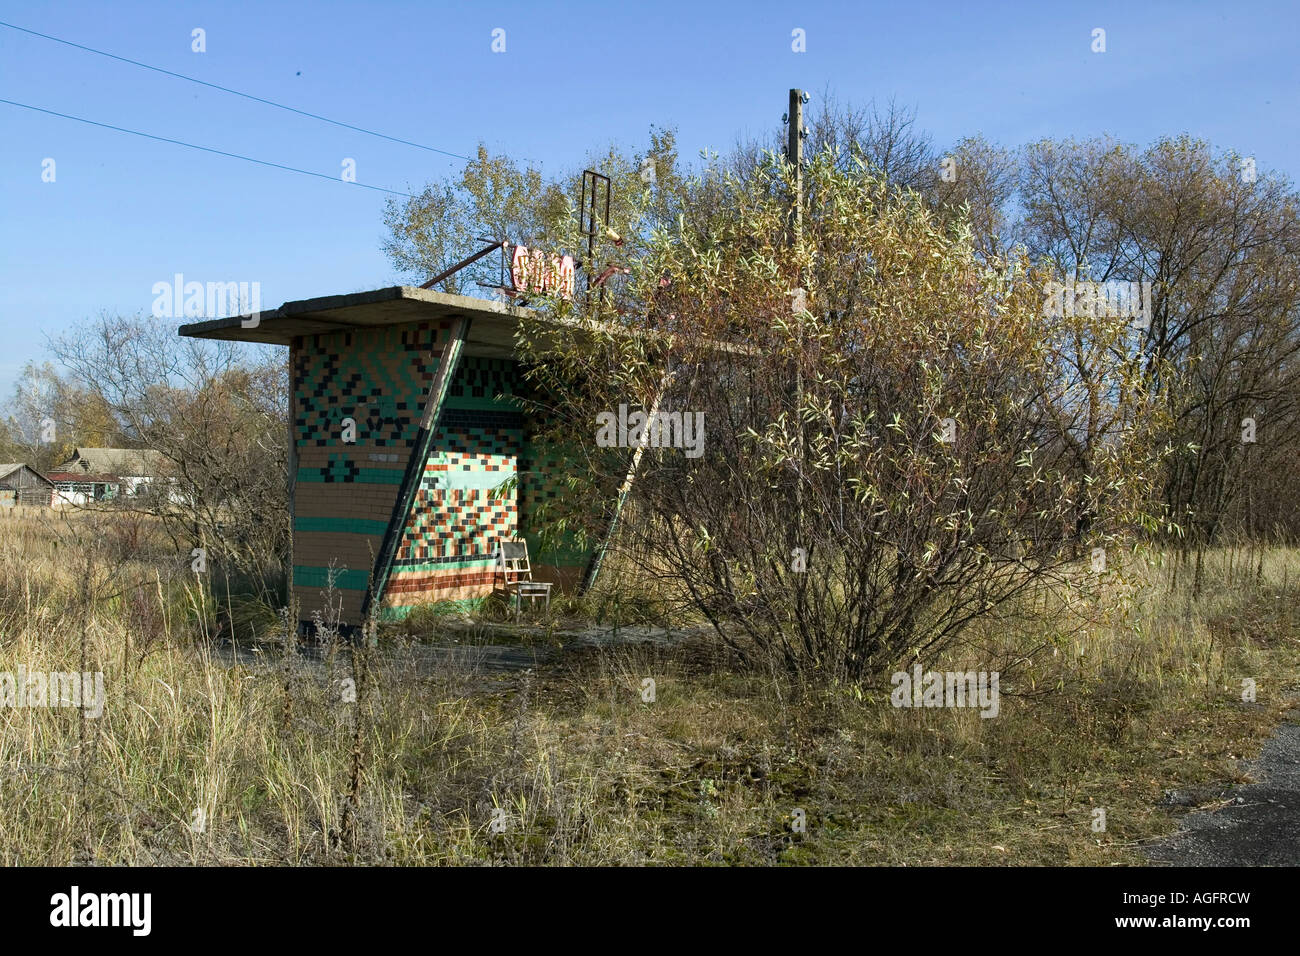 Chernobyl exclusion zone - Stock Image